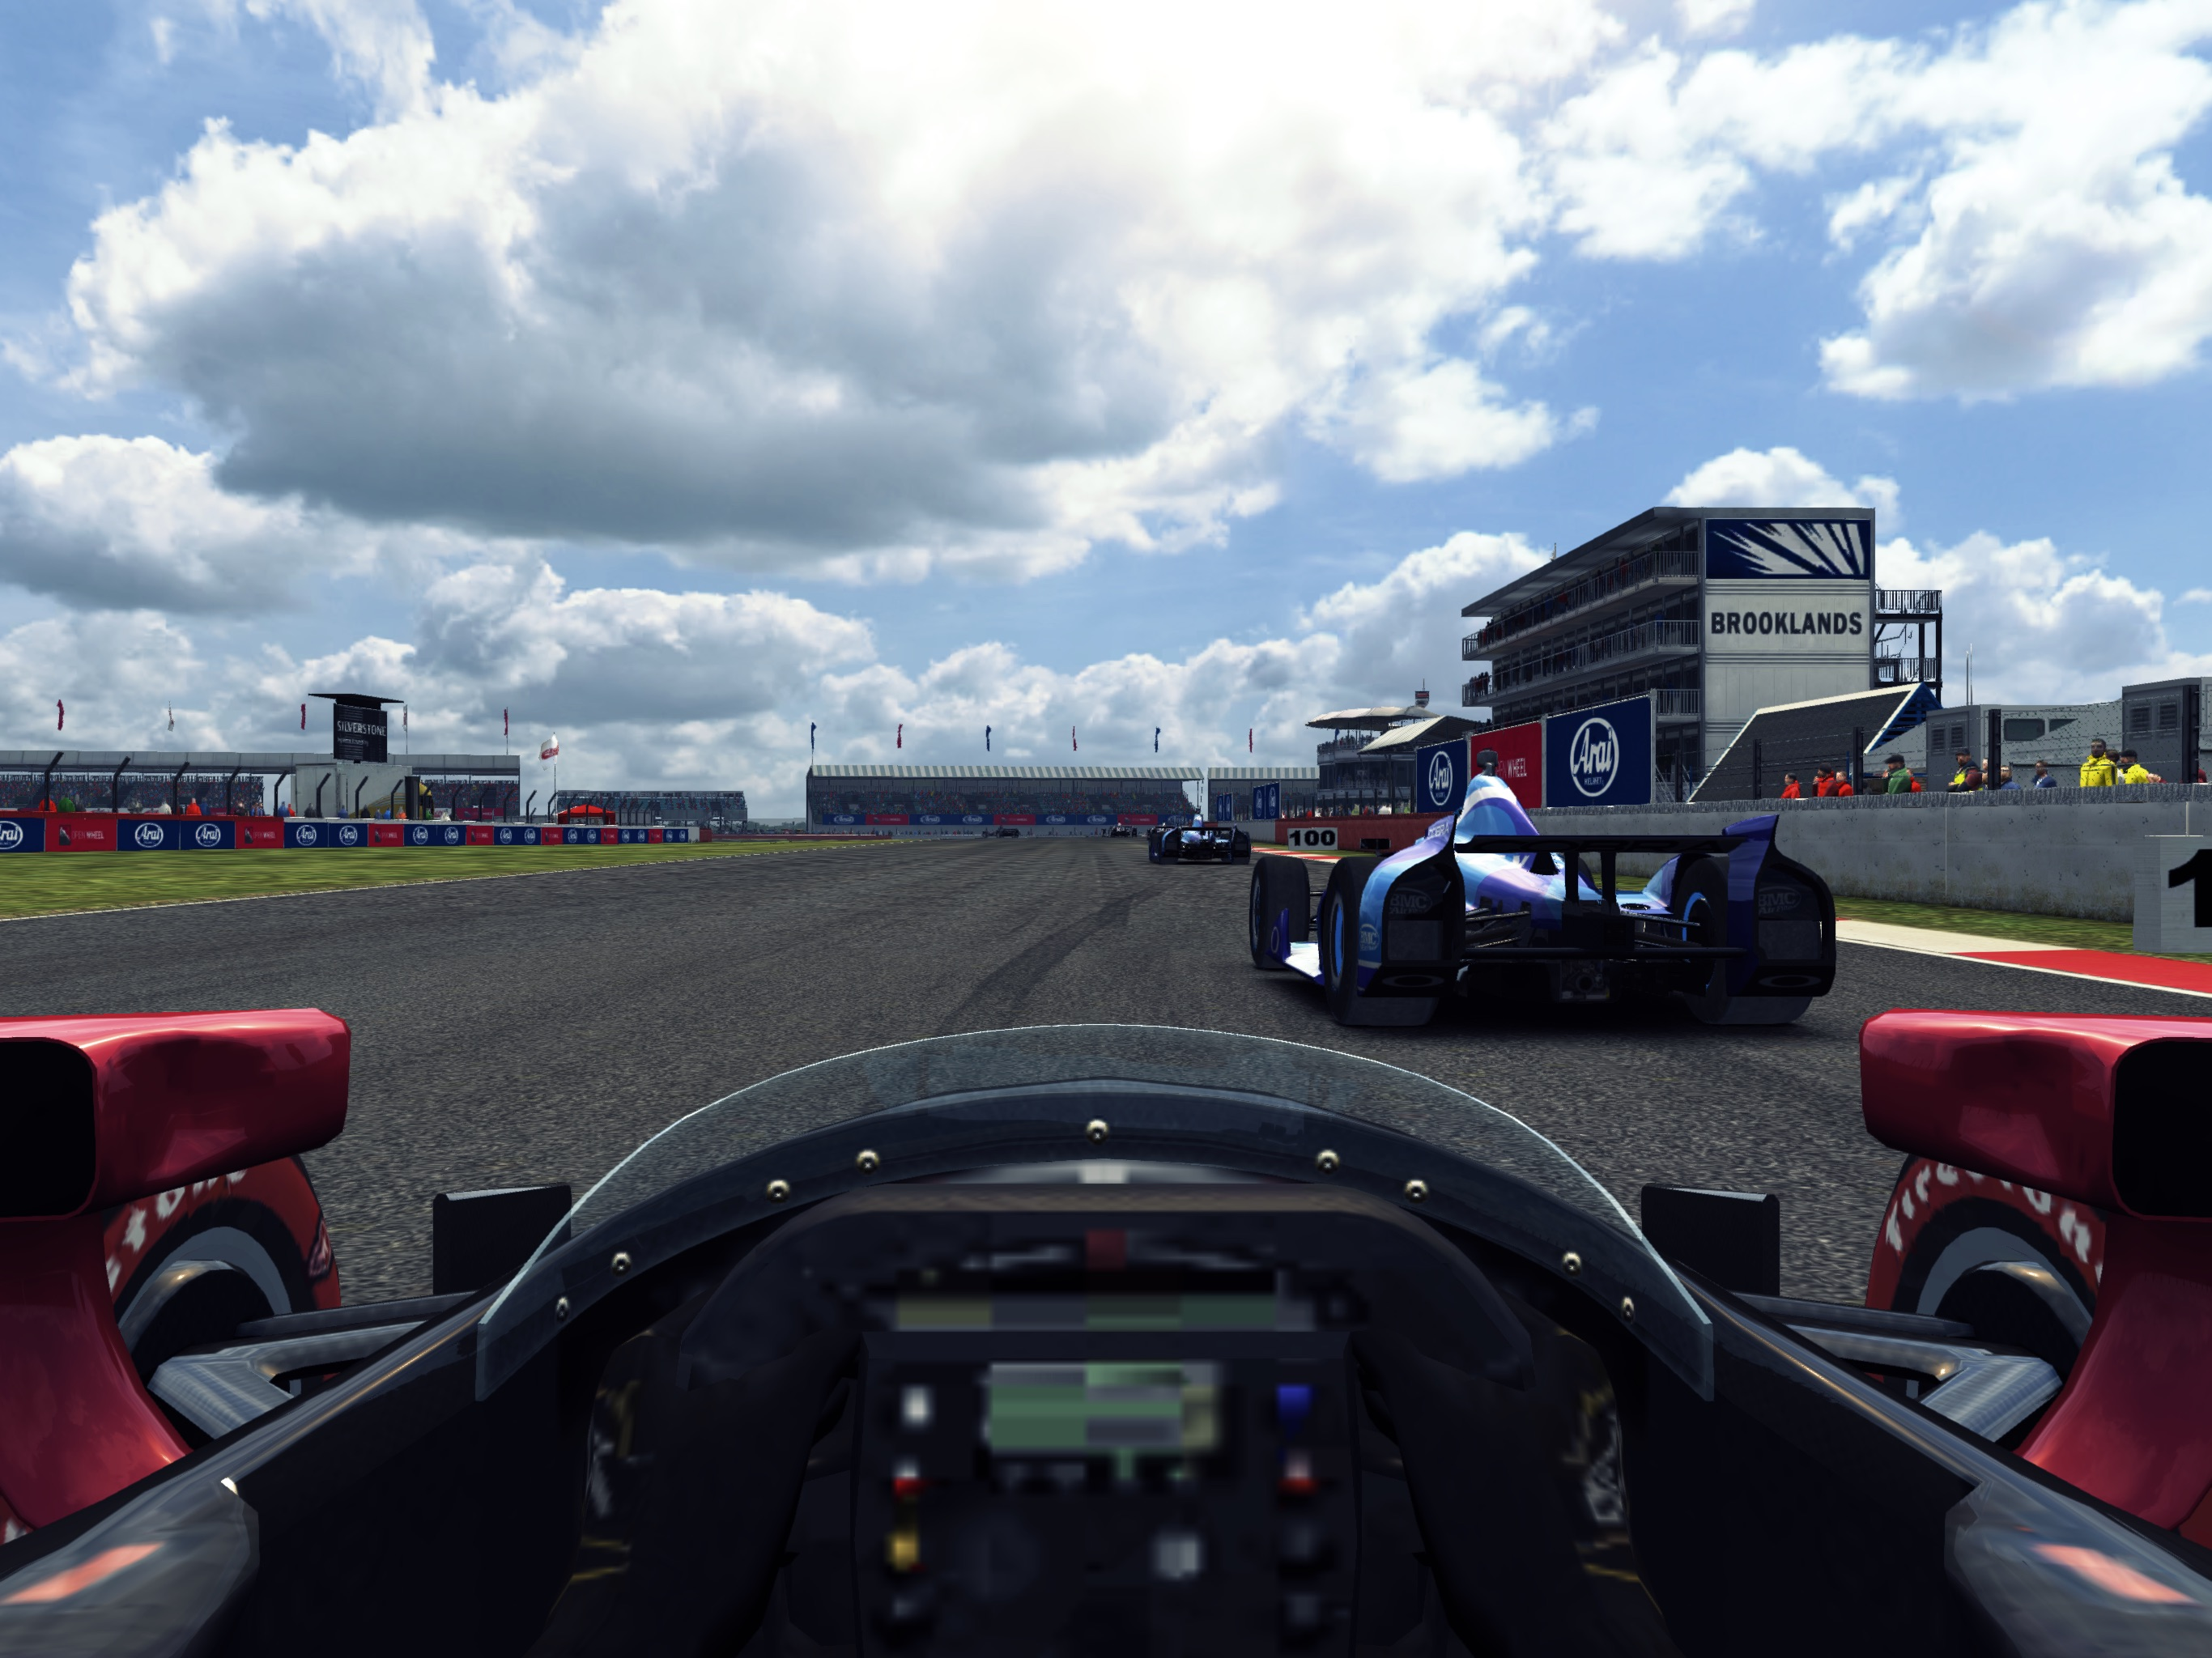 Feral Interactive's 'Console-Quality' GRID Autosport Racing Game Drives onto iPad and iPhone